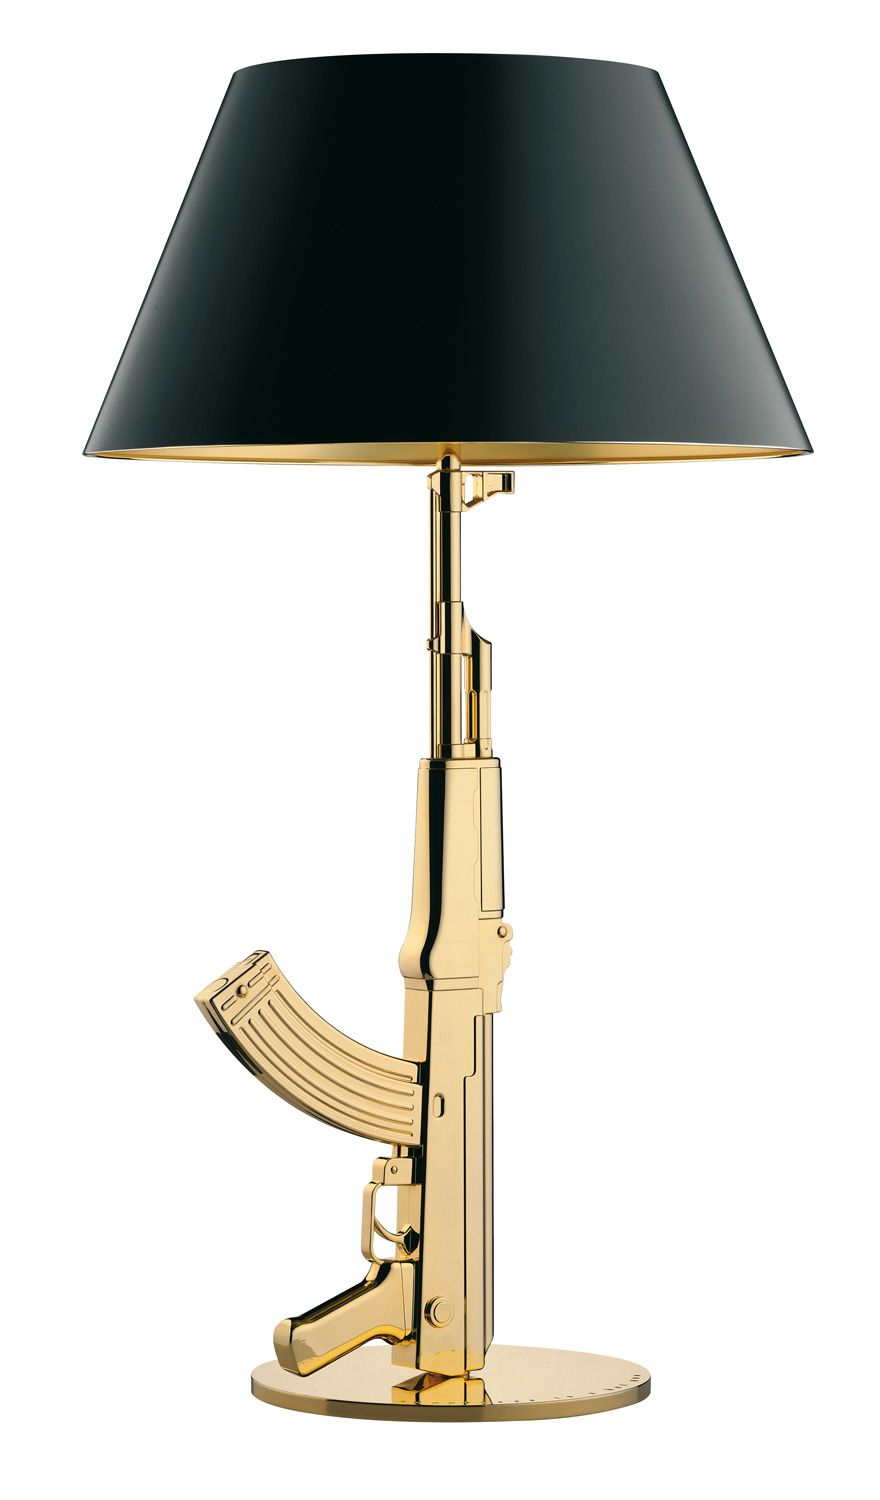 Guns Table Lamp by Flos Lighting | FU295400 | Funky table